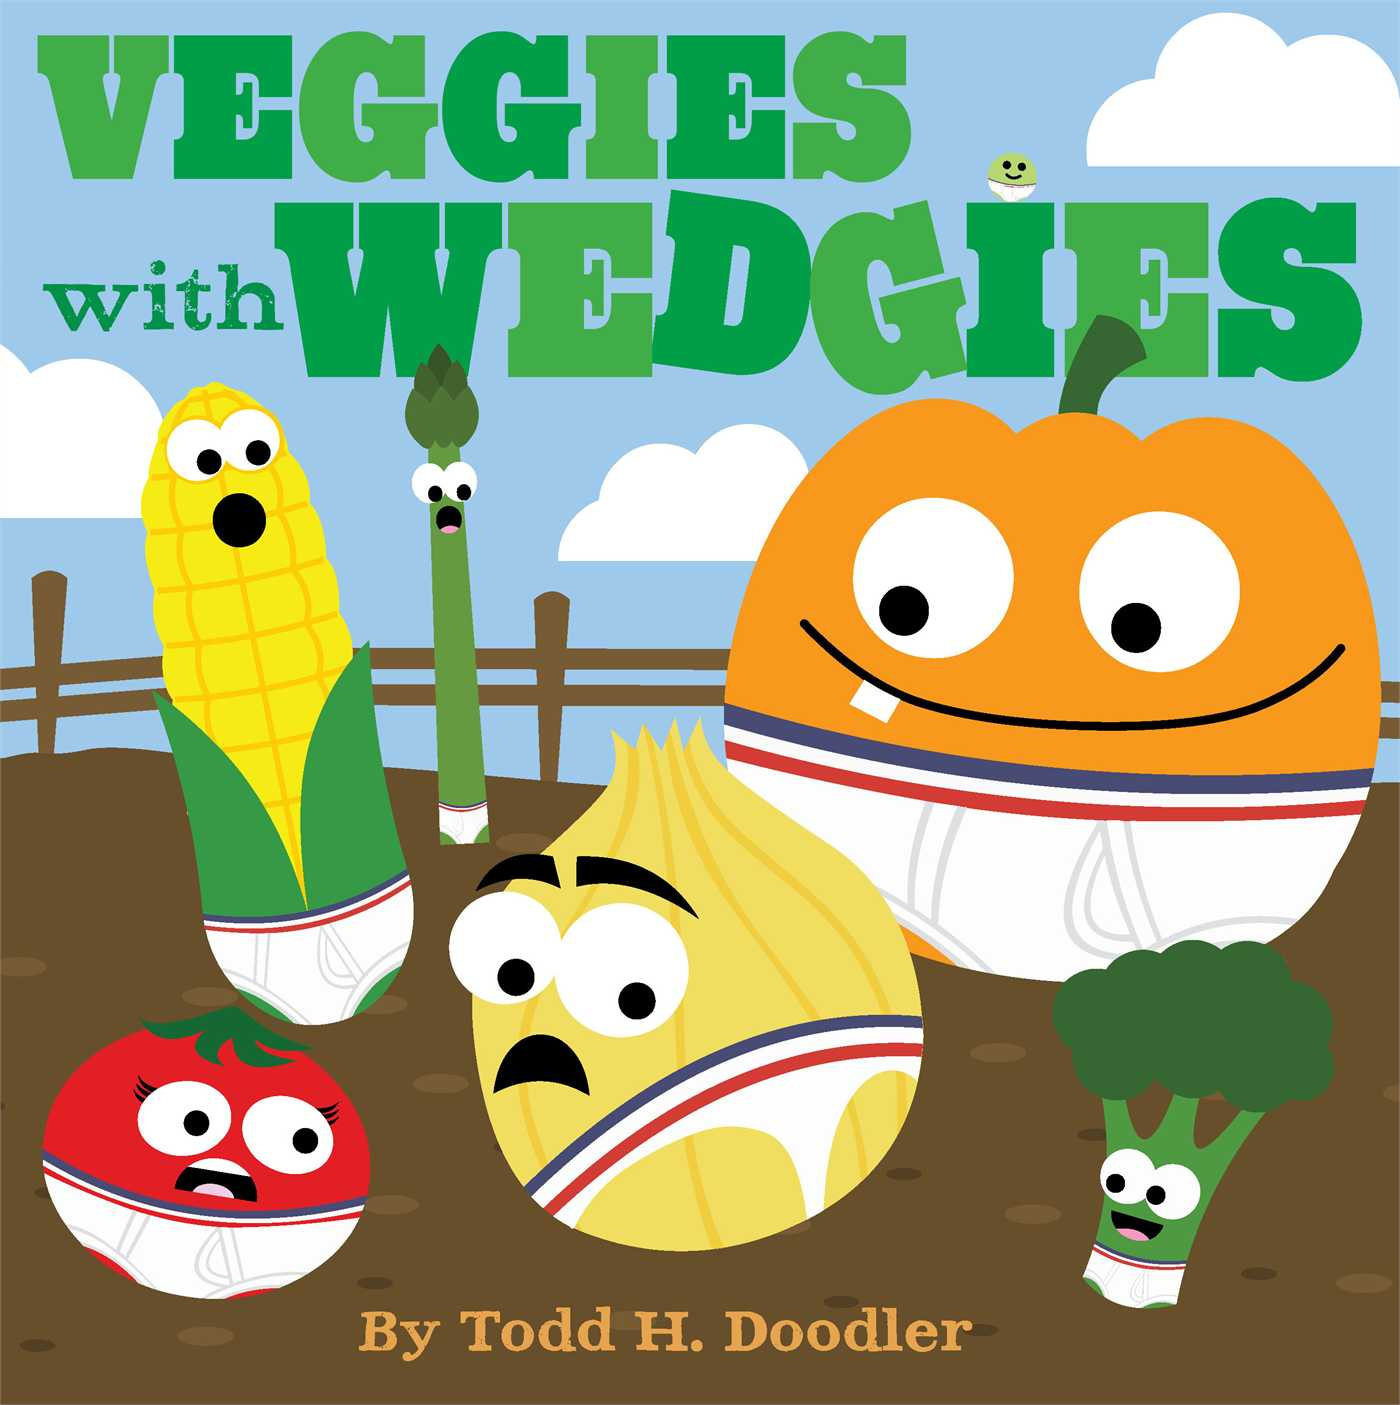 Veggies-with-wedgies-9781442493407_hr